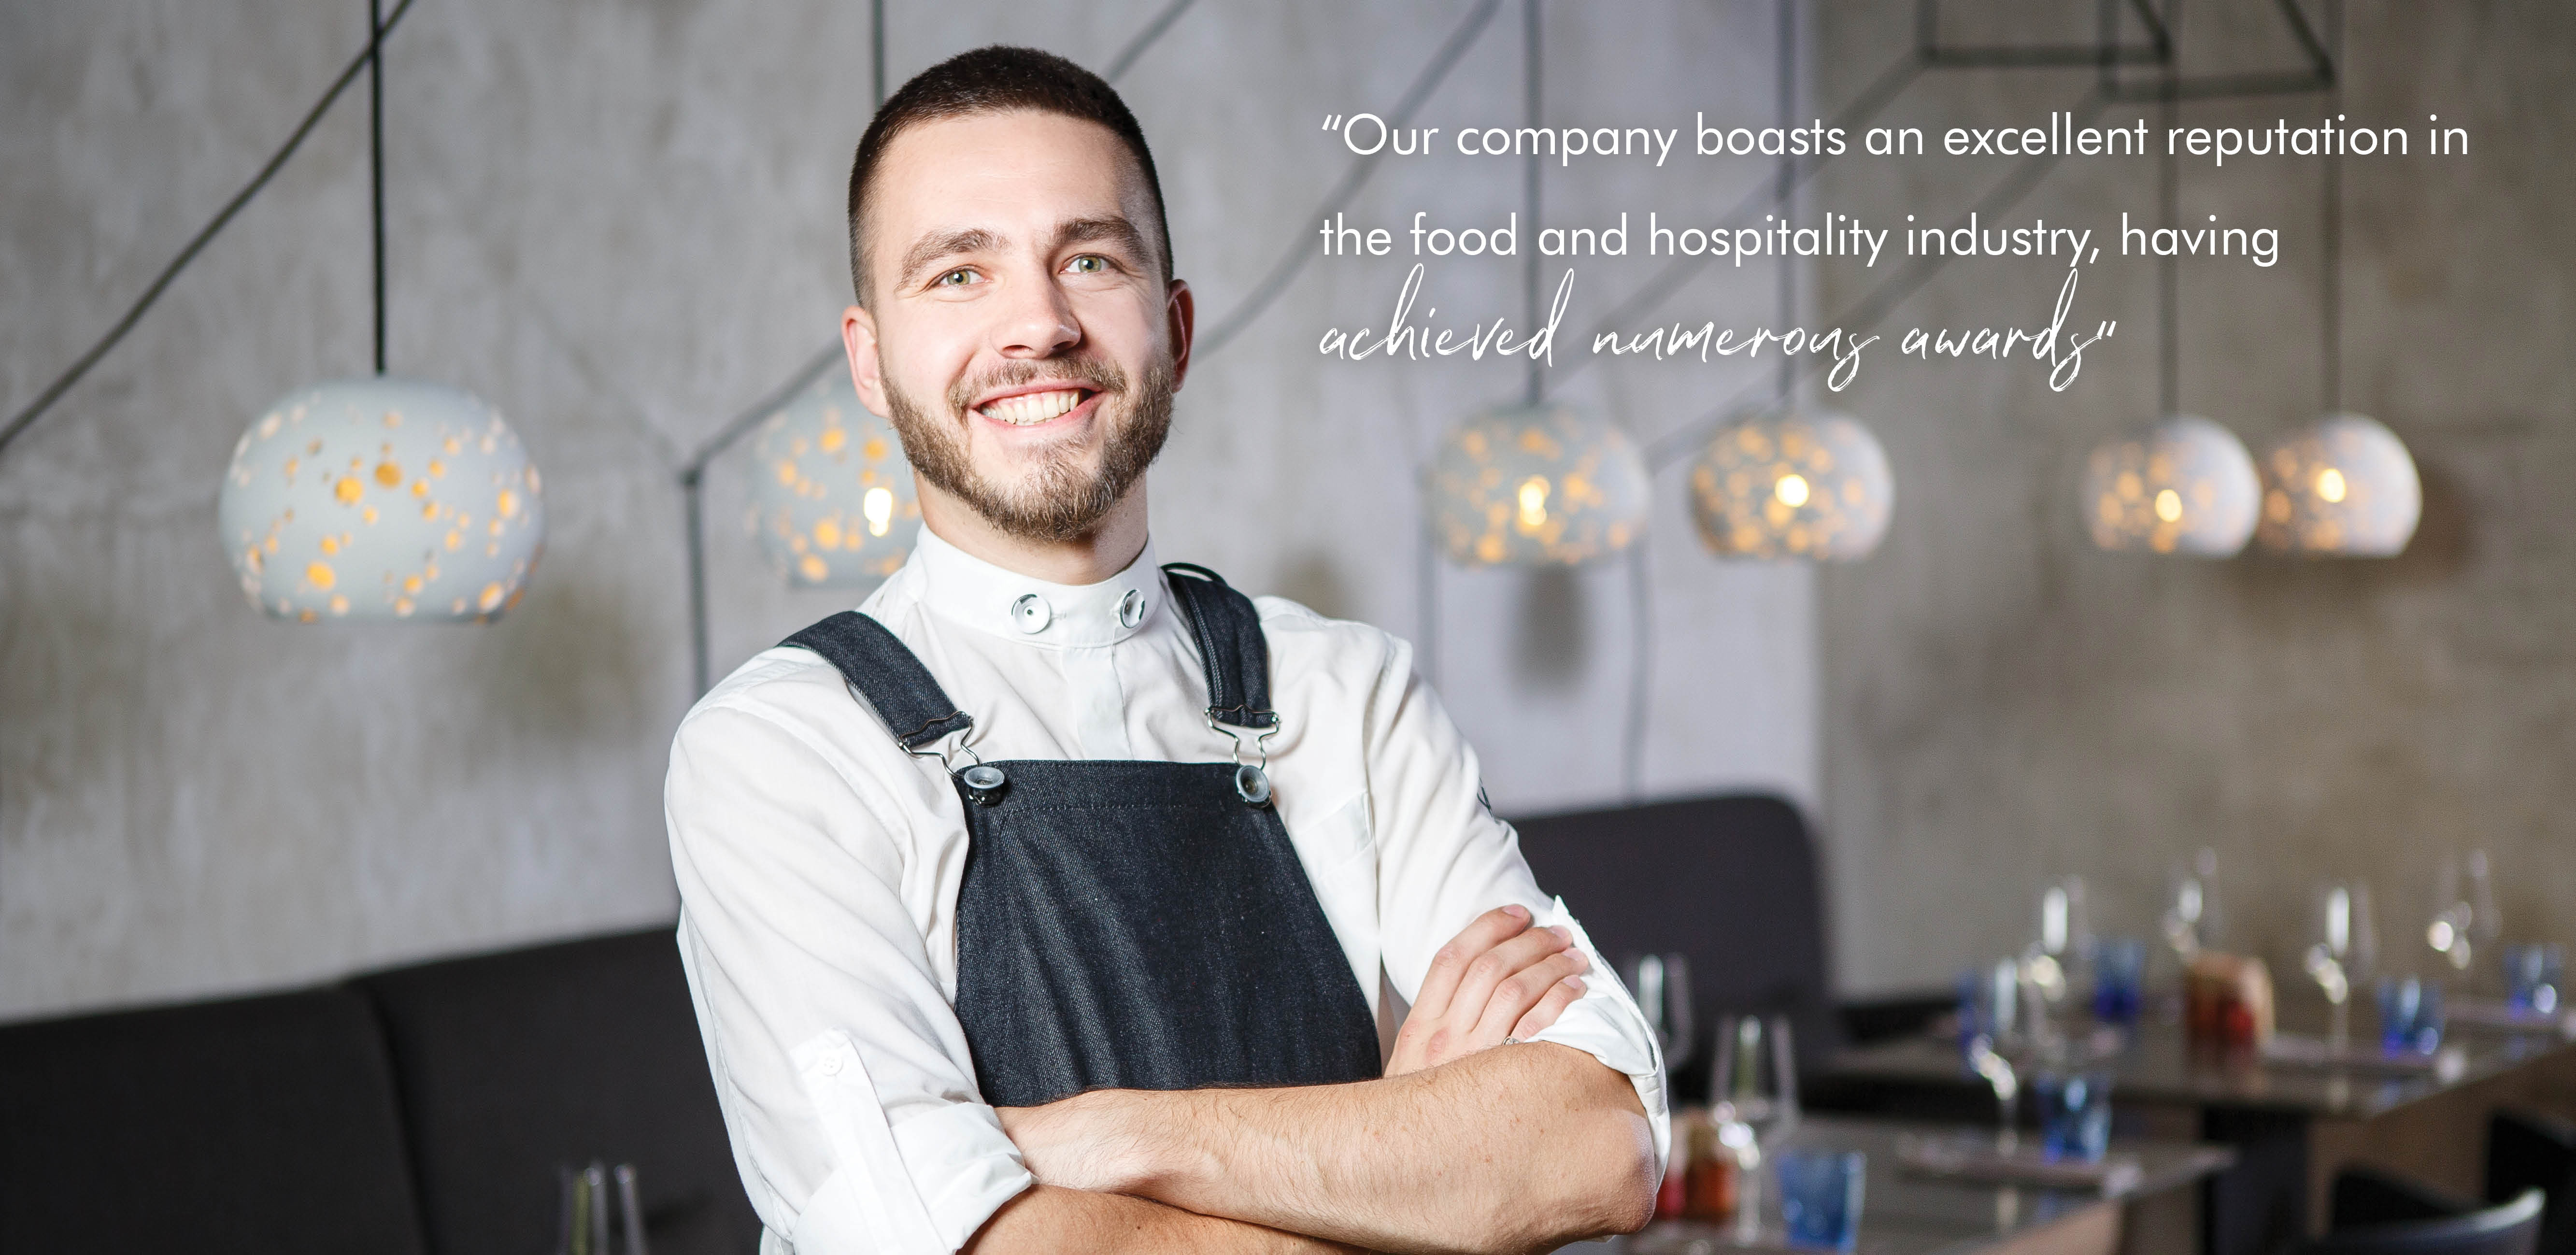 Catering HQ - management and advisory services, hospitality industry, restaurant, Steve sidd